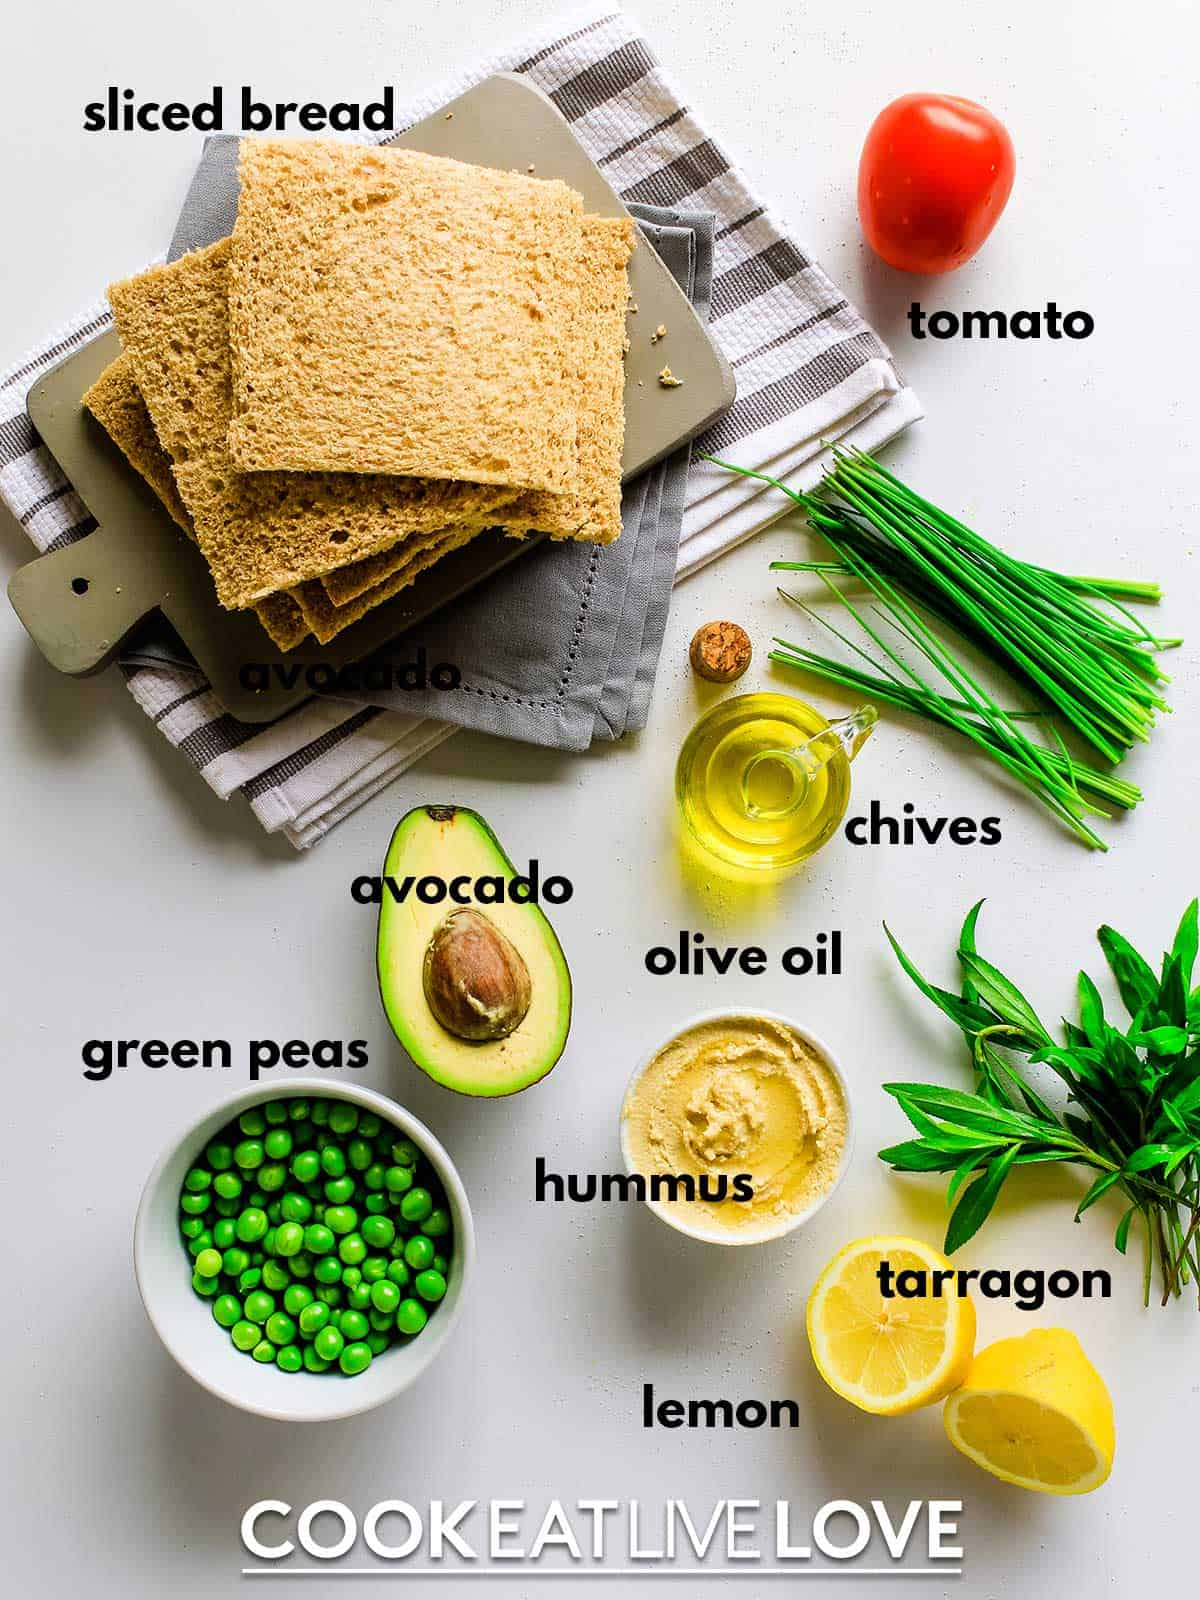 Ingredients for triple decker sandwich on table with text labels